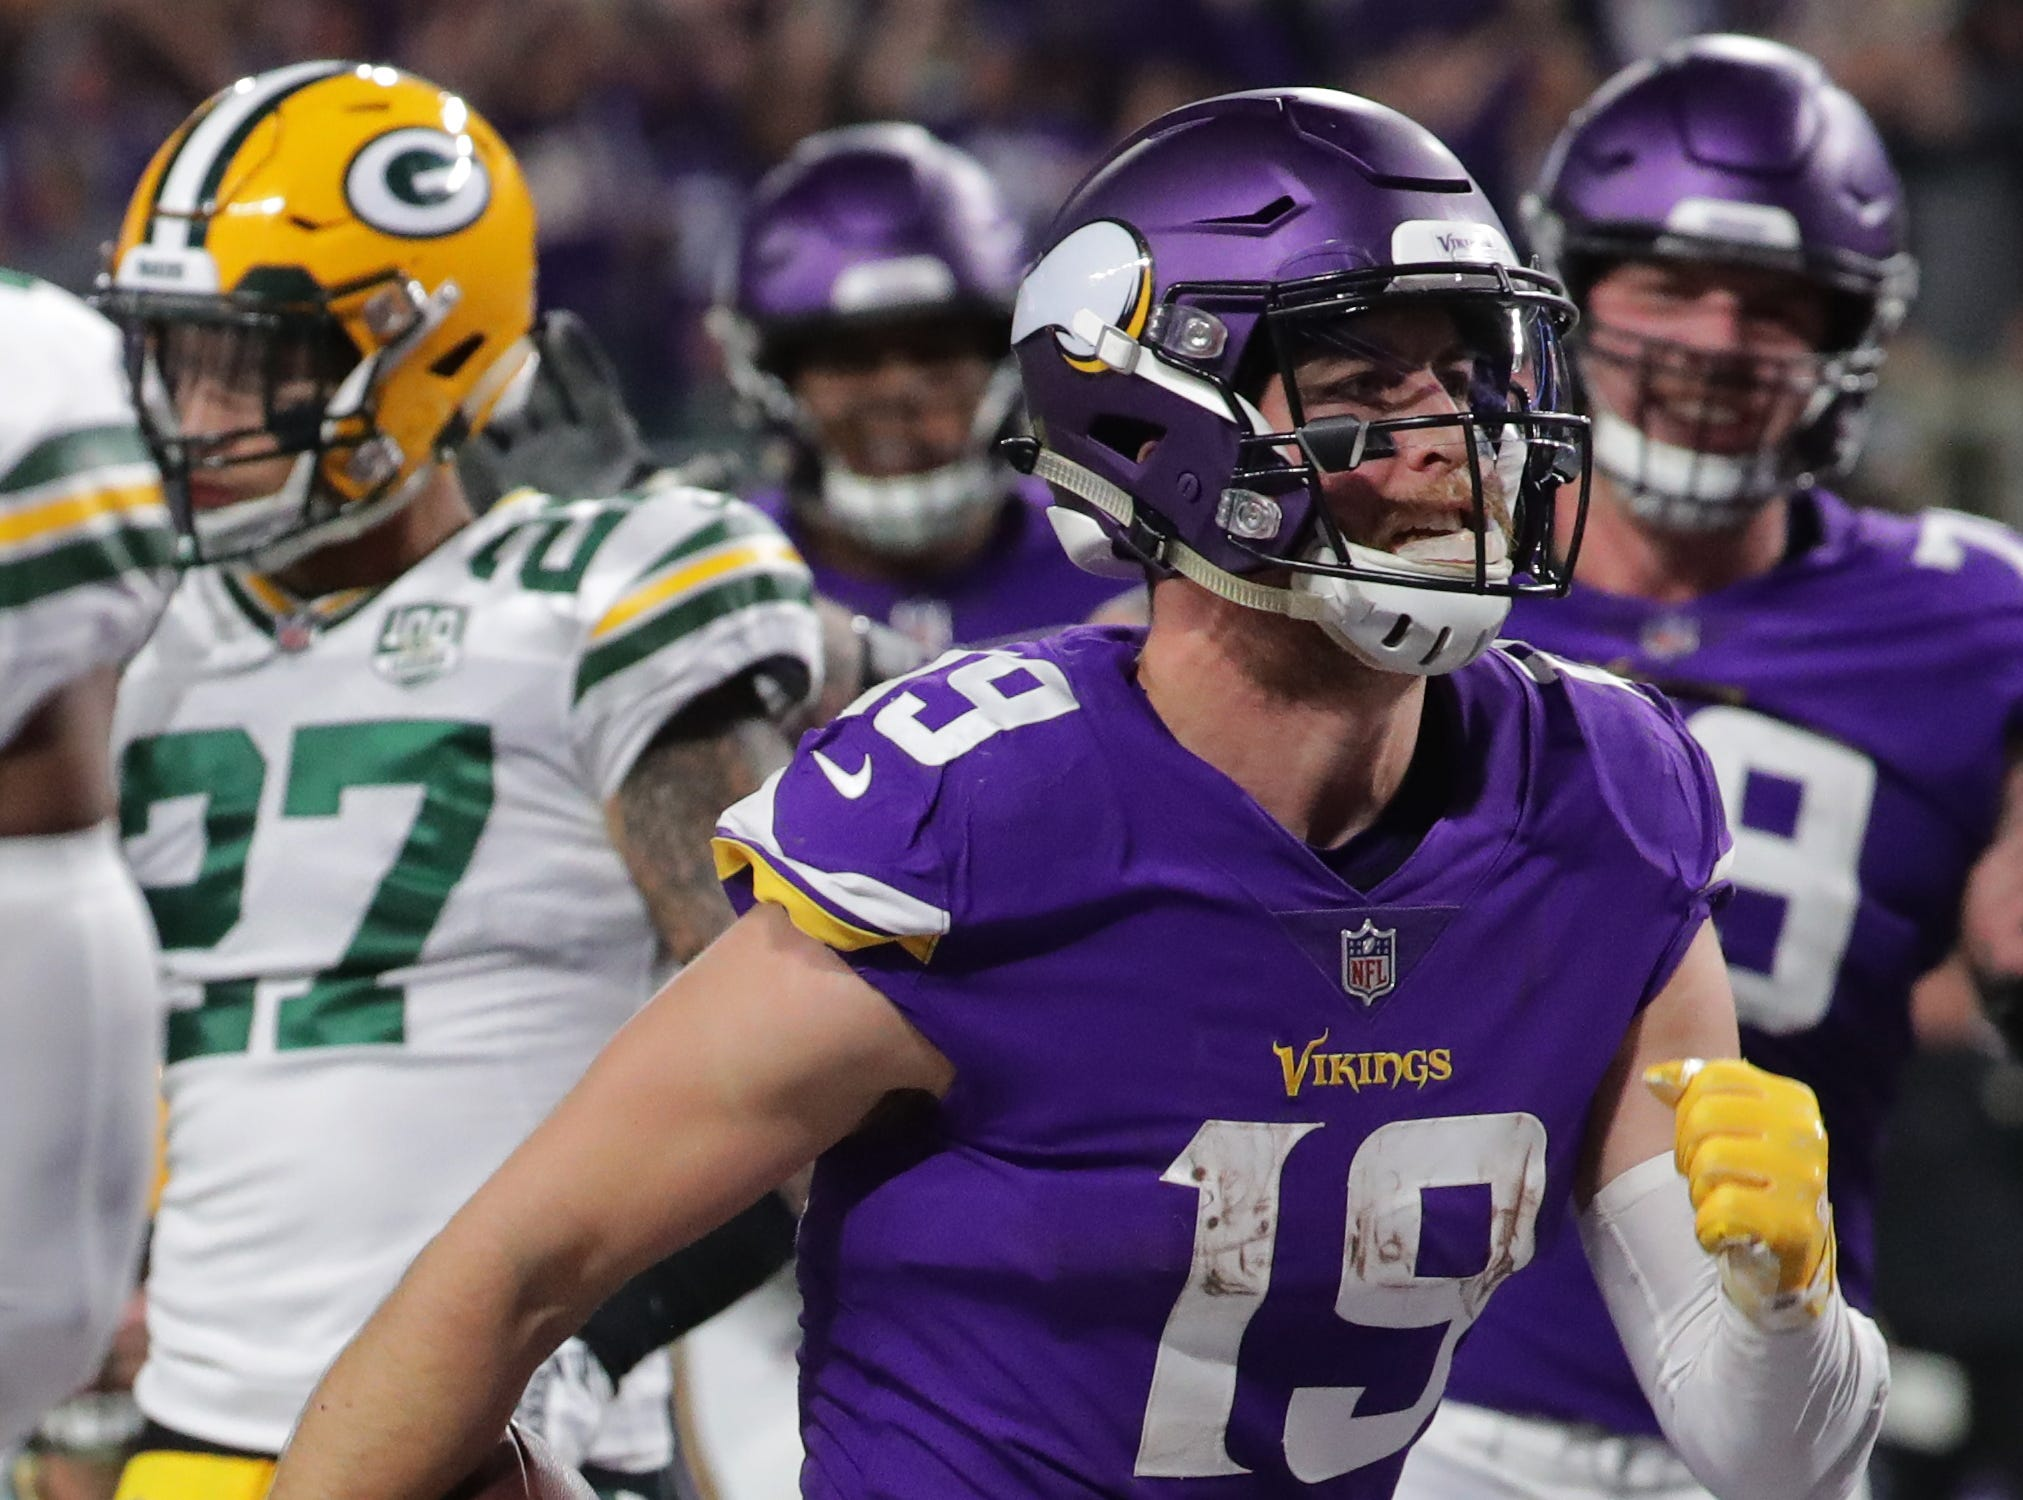 Minnesota Vikings wide receiver Adam Thielen (19) strust after scoring a touchdown on a 14-yard reception during the third quarter of their game Sunday, November 25, 2018 at U.S. Bank Stadium in Minneapolis, Minn. The Minnesota Vikings beat the Green Bay Packers 24-17.